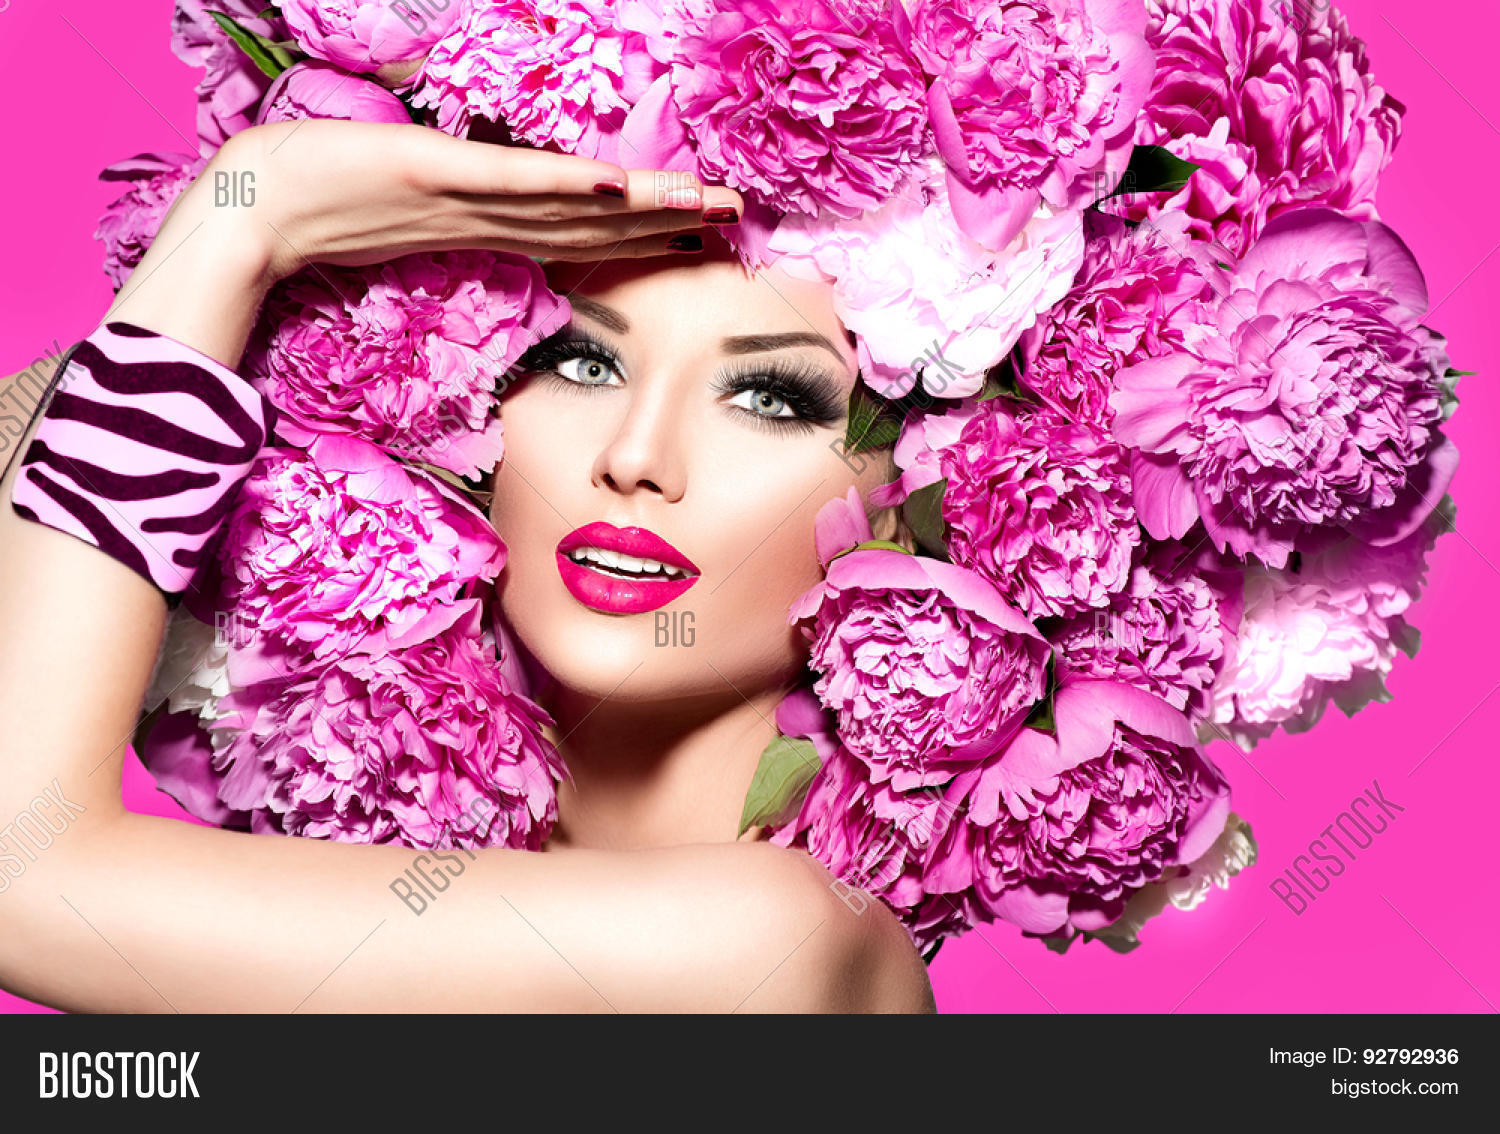 Make-up, hairstyles, manicure: a selection of sites